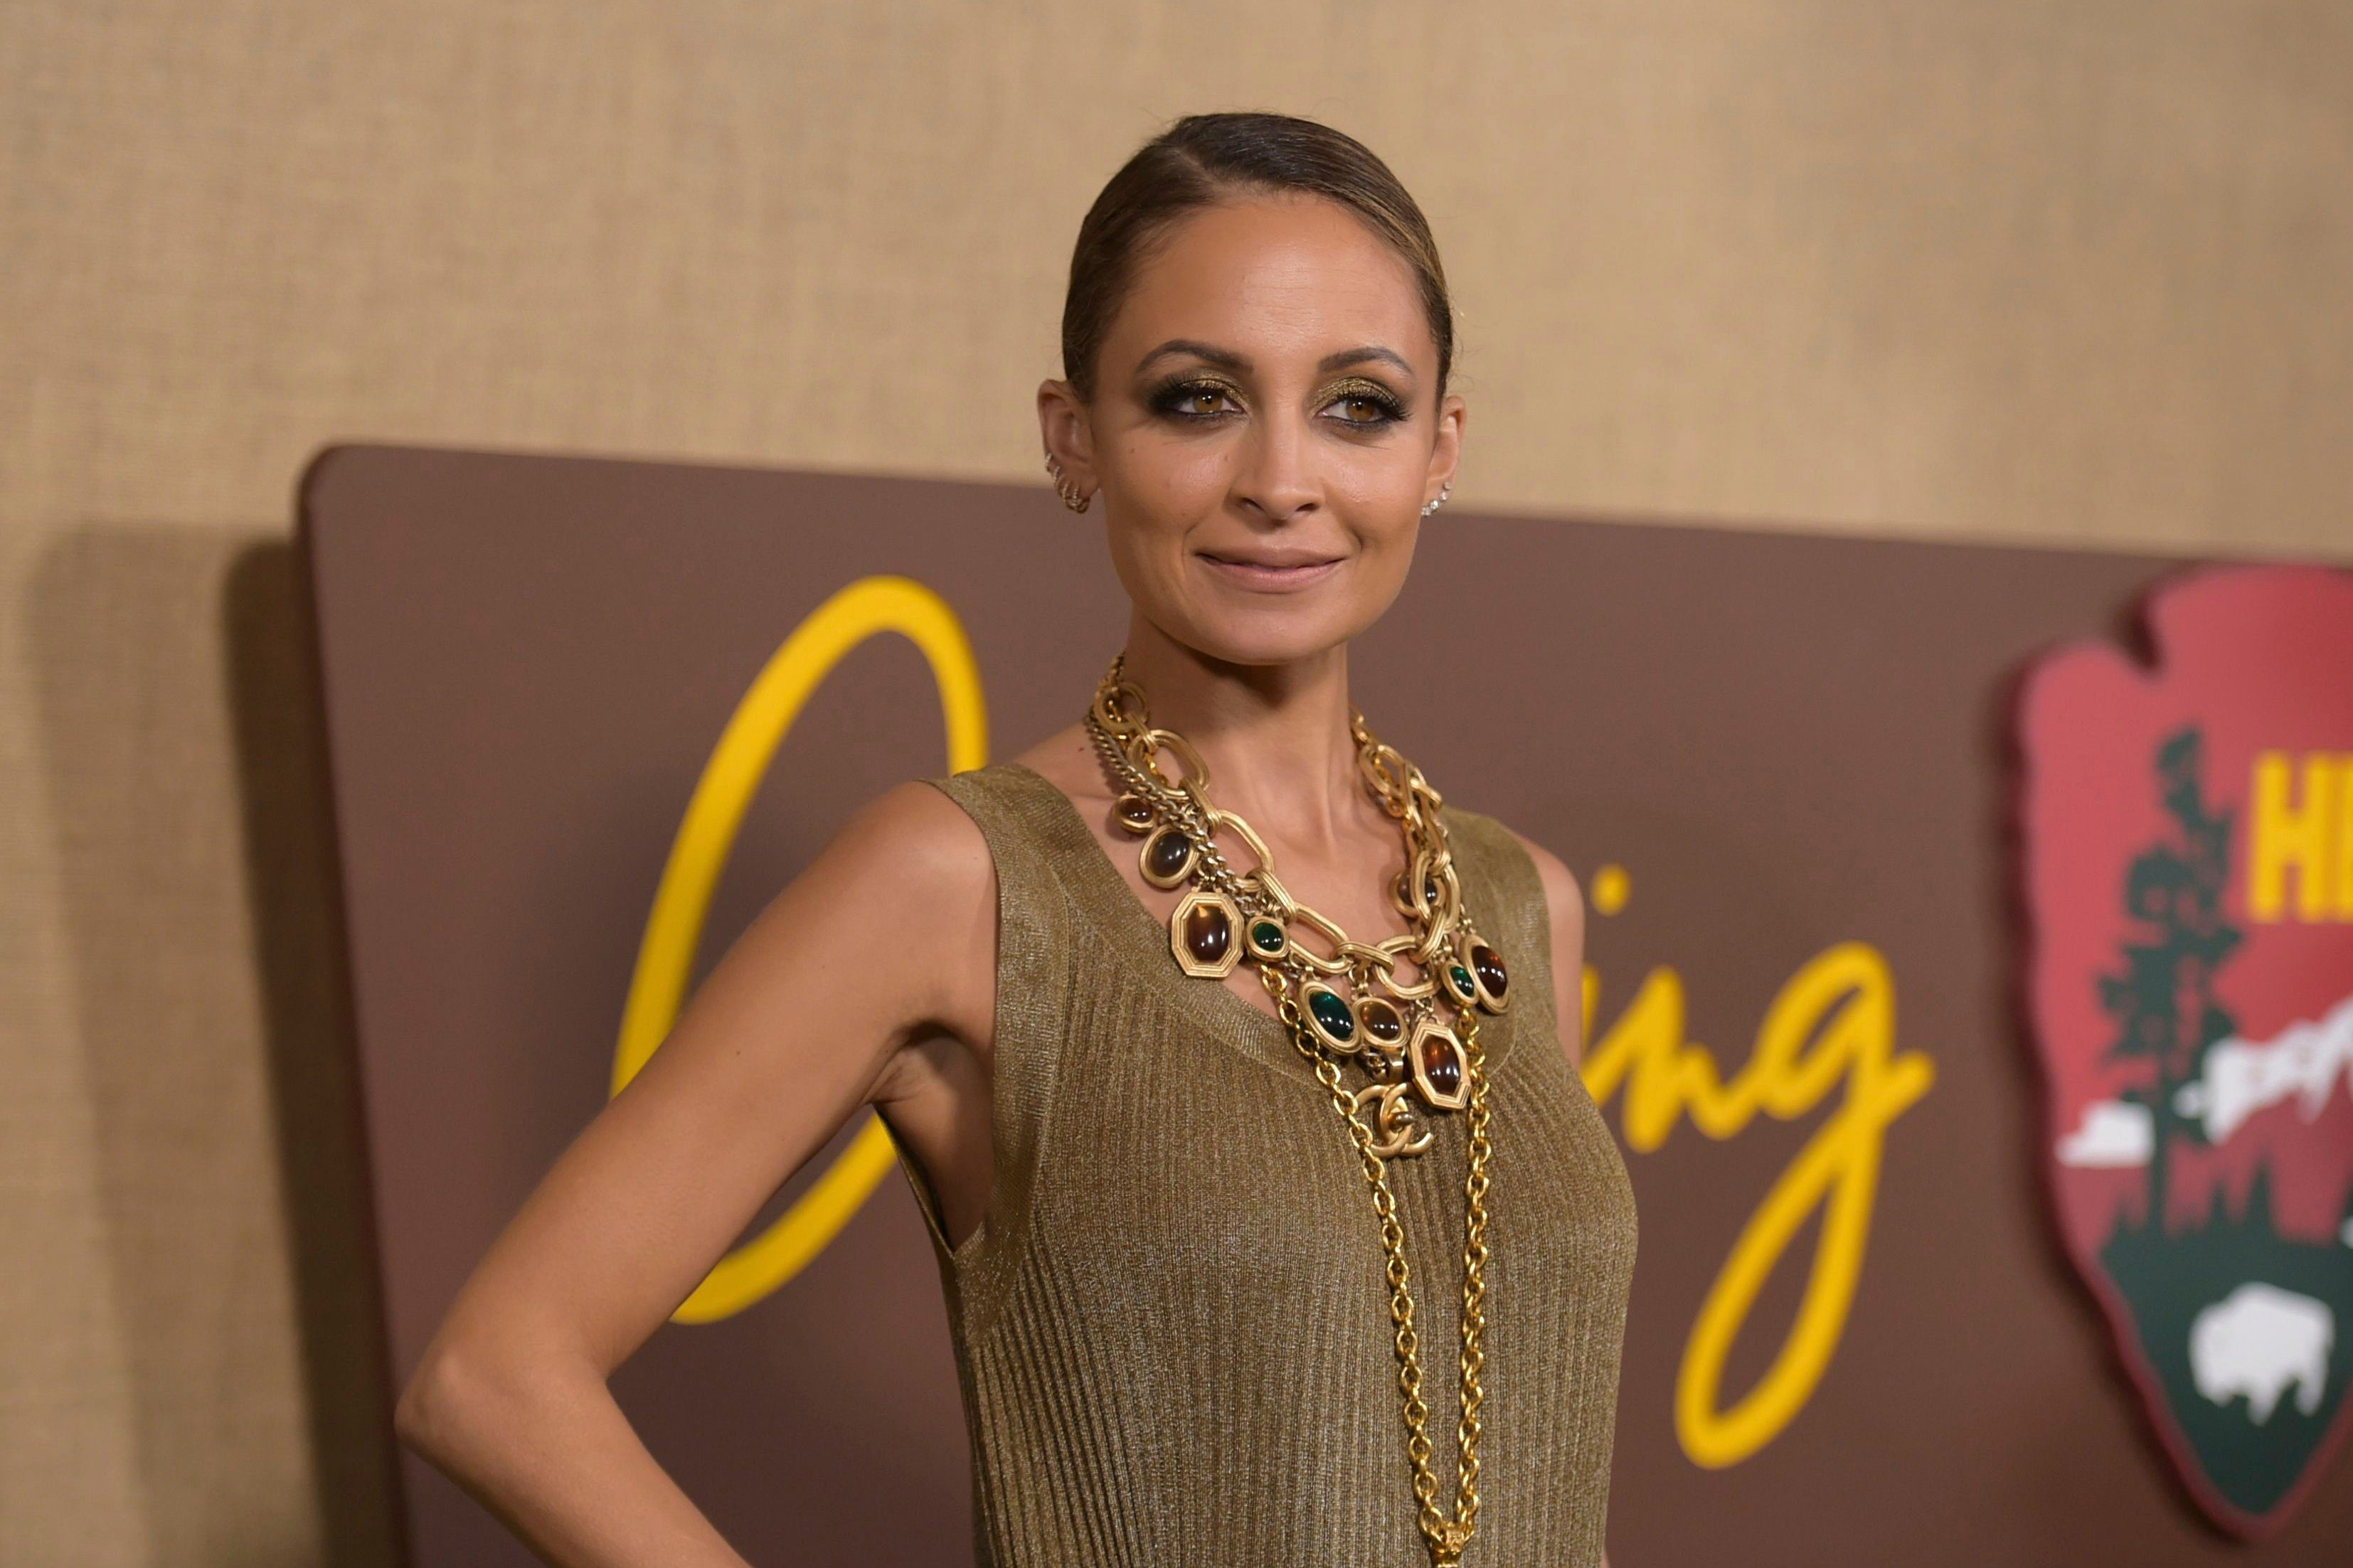 """Mandatory Credit: Photo by Richard Shotwell/Invision/AP/Shutterstock (9921912cl) Nicole Richie arrives at the Los Angeles premiere of """"Camping"""", at Paramount Studios LA Premiere of """"Camping"""", Los Angeles, USA - 10 Oct 2018"""